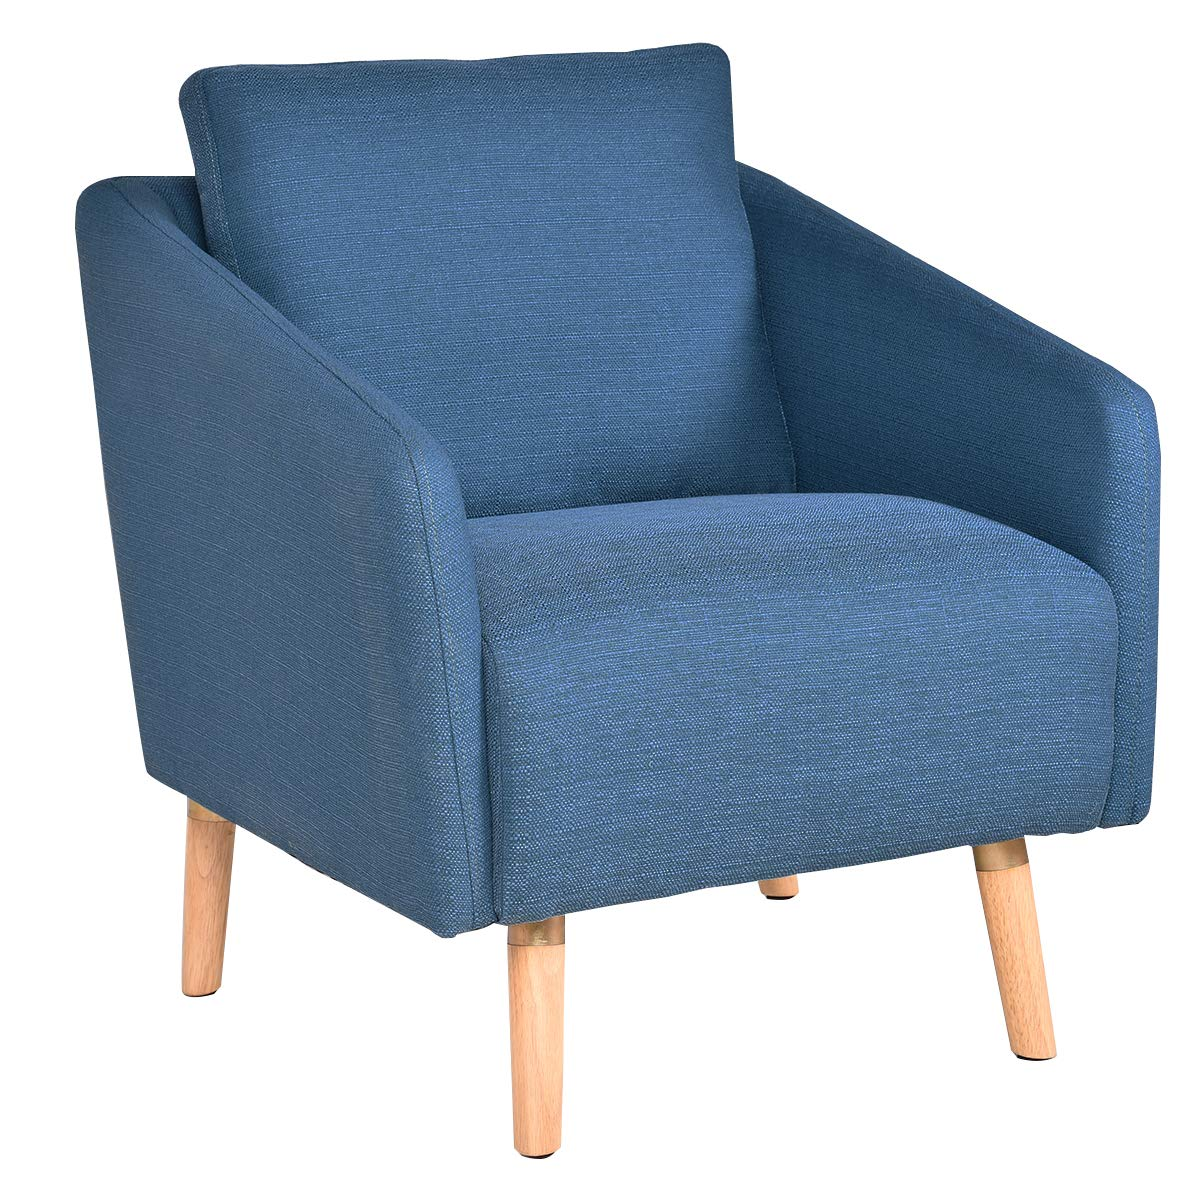 Giantex Accent Leisure Upholstered Arm Chair Single Sofa Living Room Furniture Blue